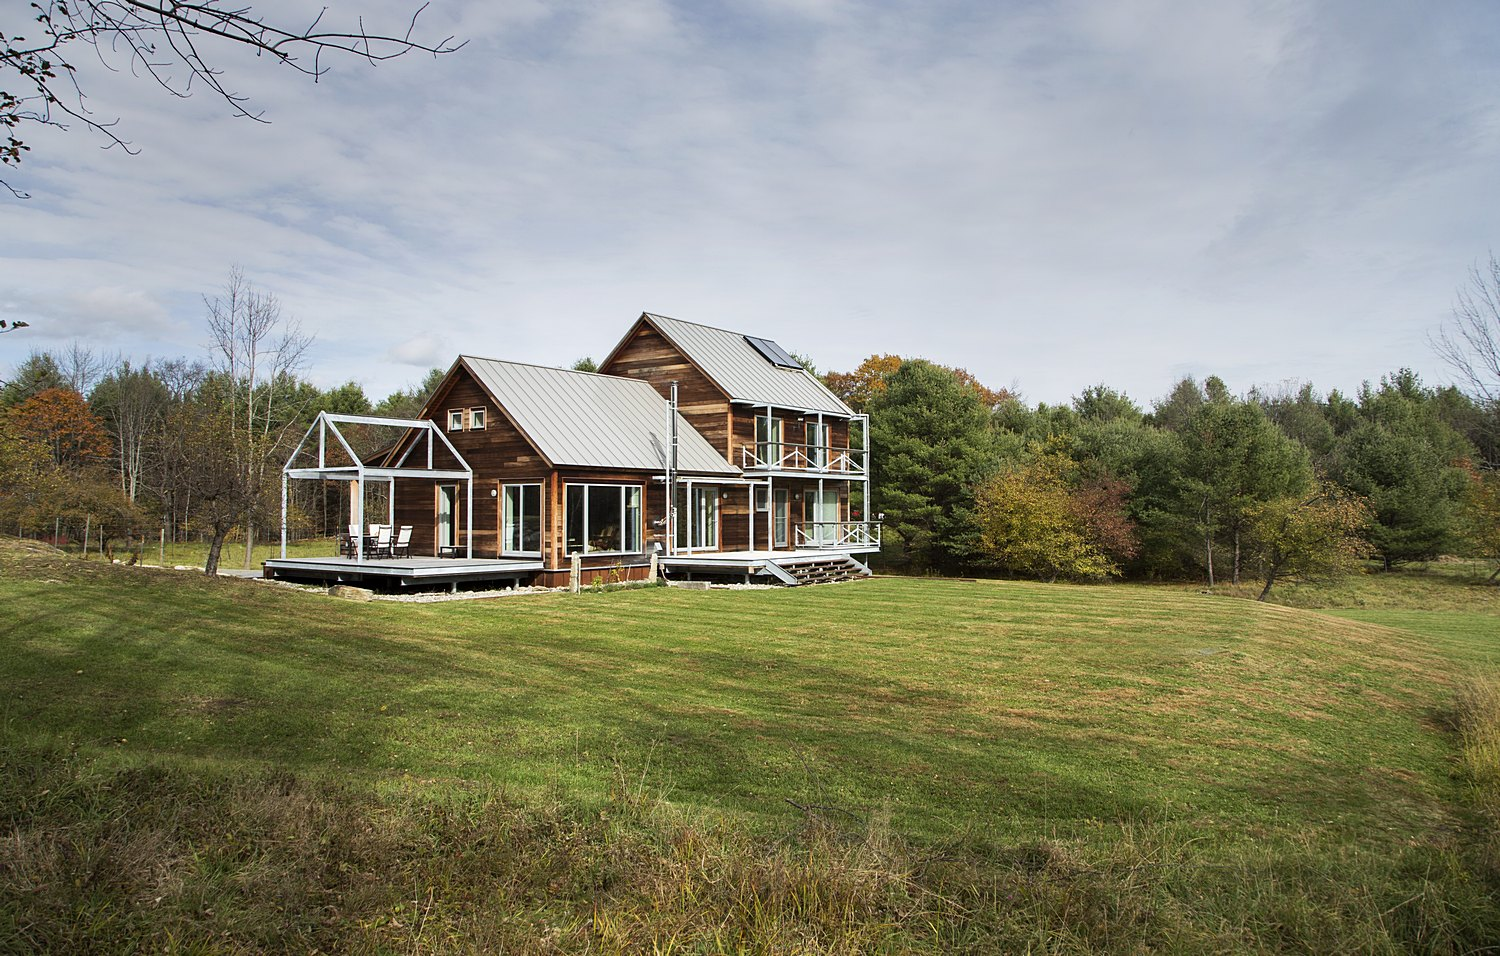 Farmstead Passive House A Certified Passive House  ZeroEnergy - Zero energy home design